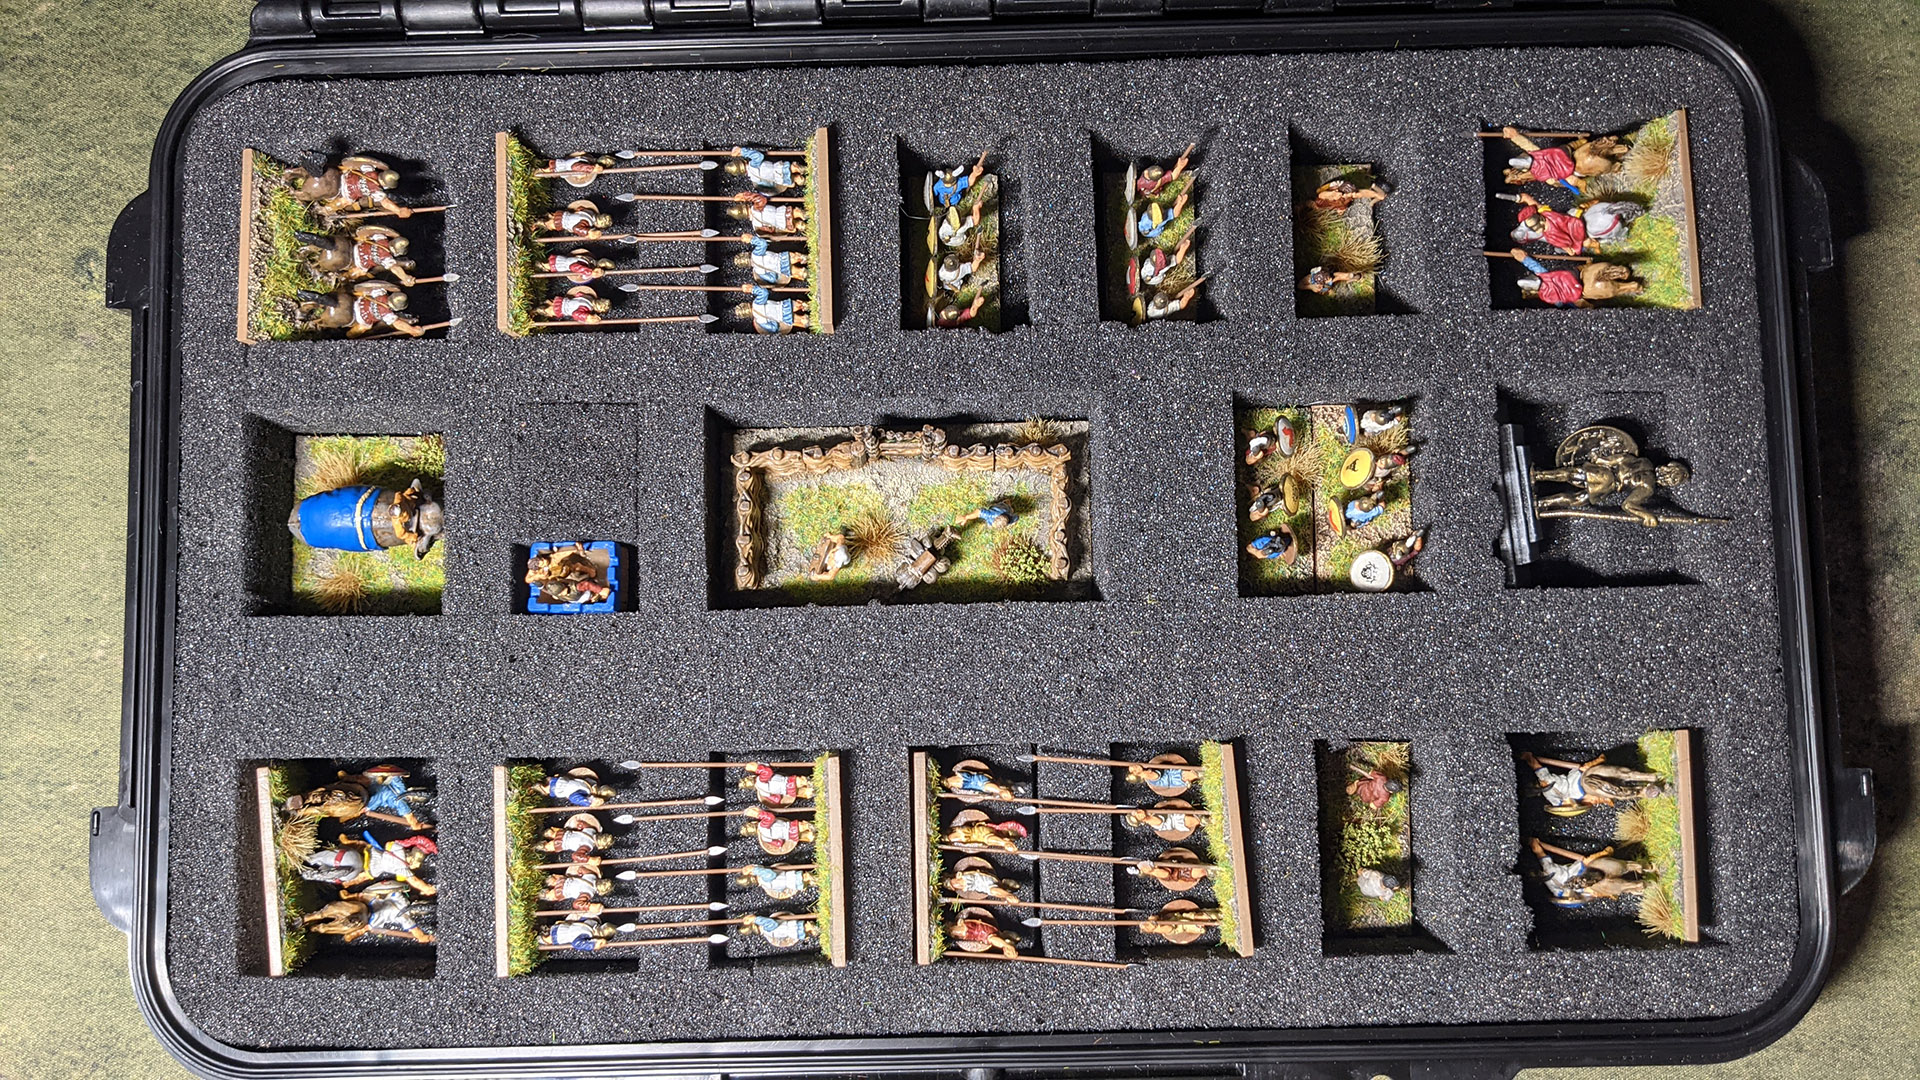 All my DBA armies use the same storage box. I had to get a little inventive with the pike units.